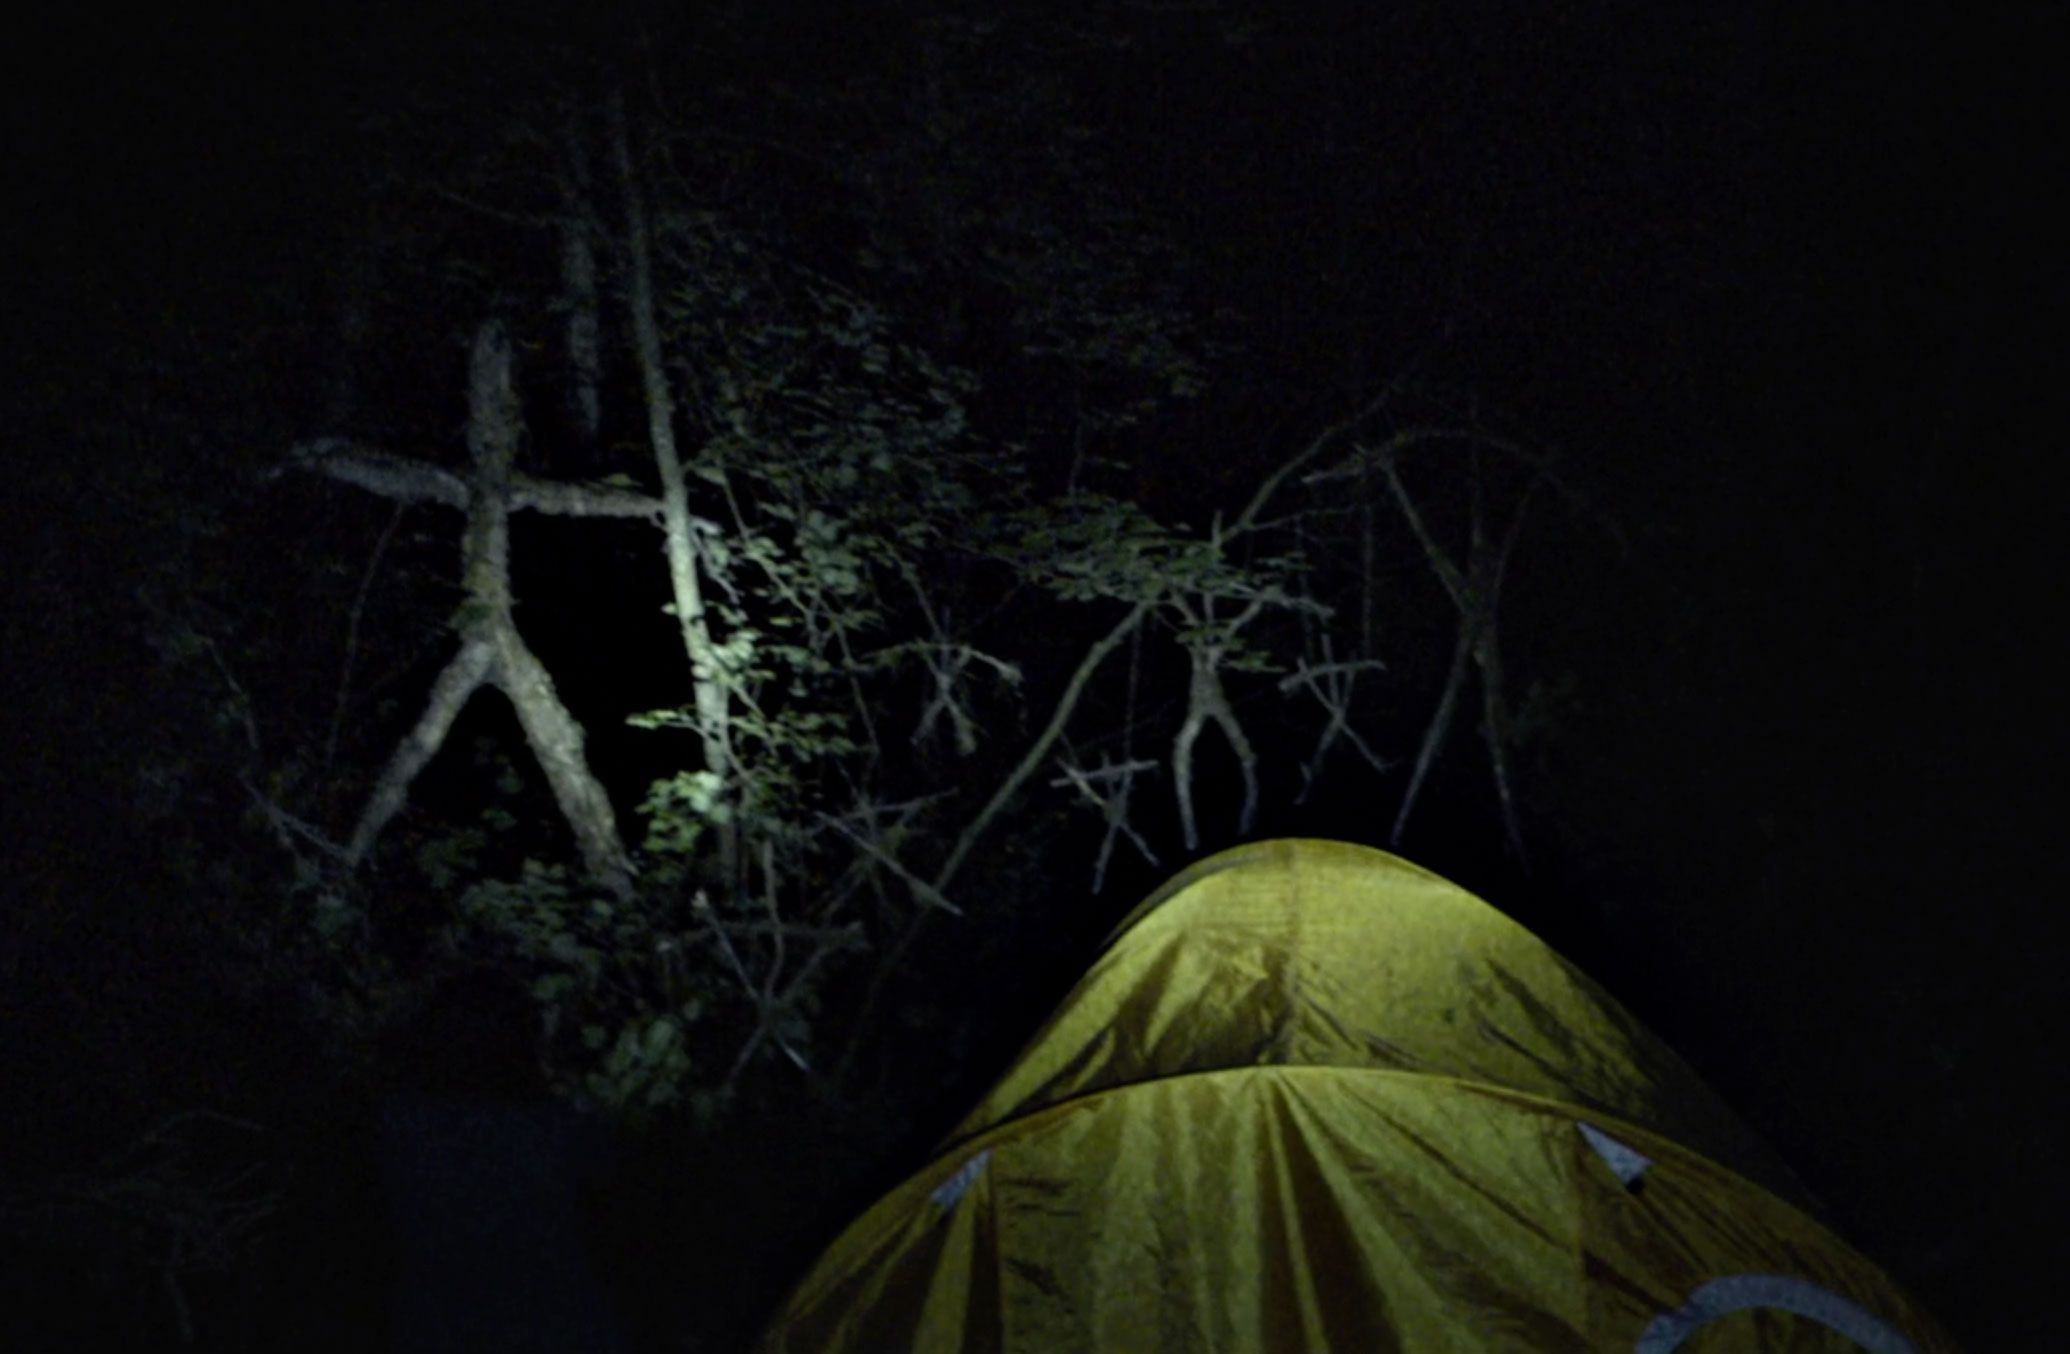 blair witch project movie Watch the blair witch project with subtitles online for free in hd free download the blair witch project watch free movie streaming now.